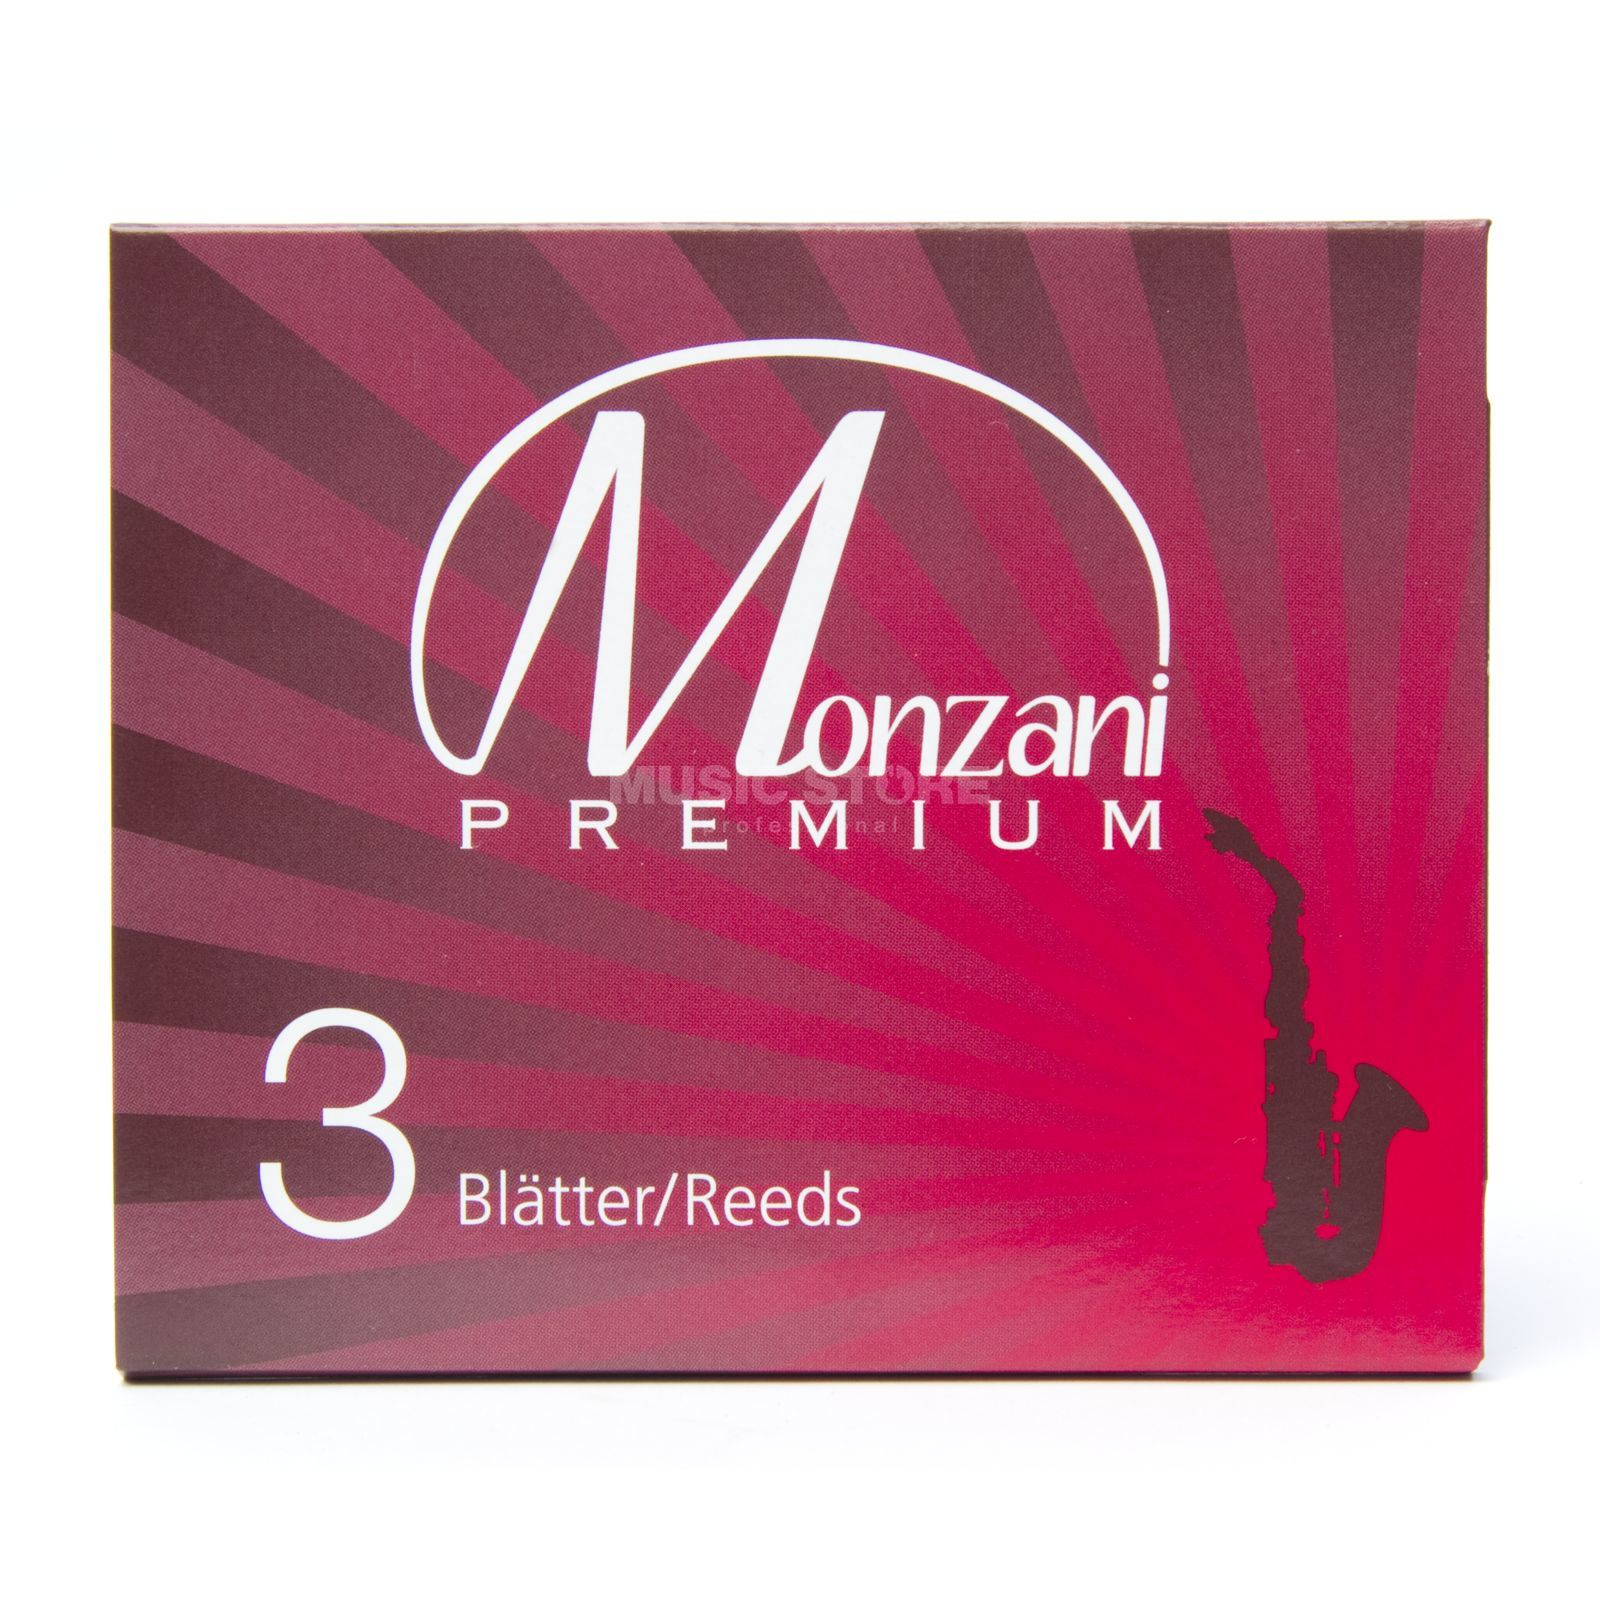 Monzani Premium B Clarinet DEU 2 Box of 3 Product Image